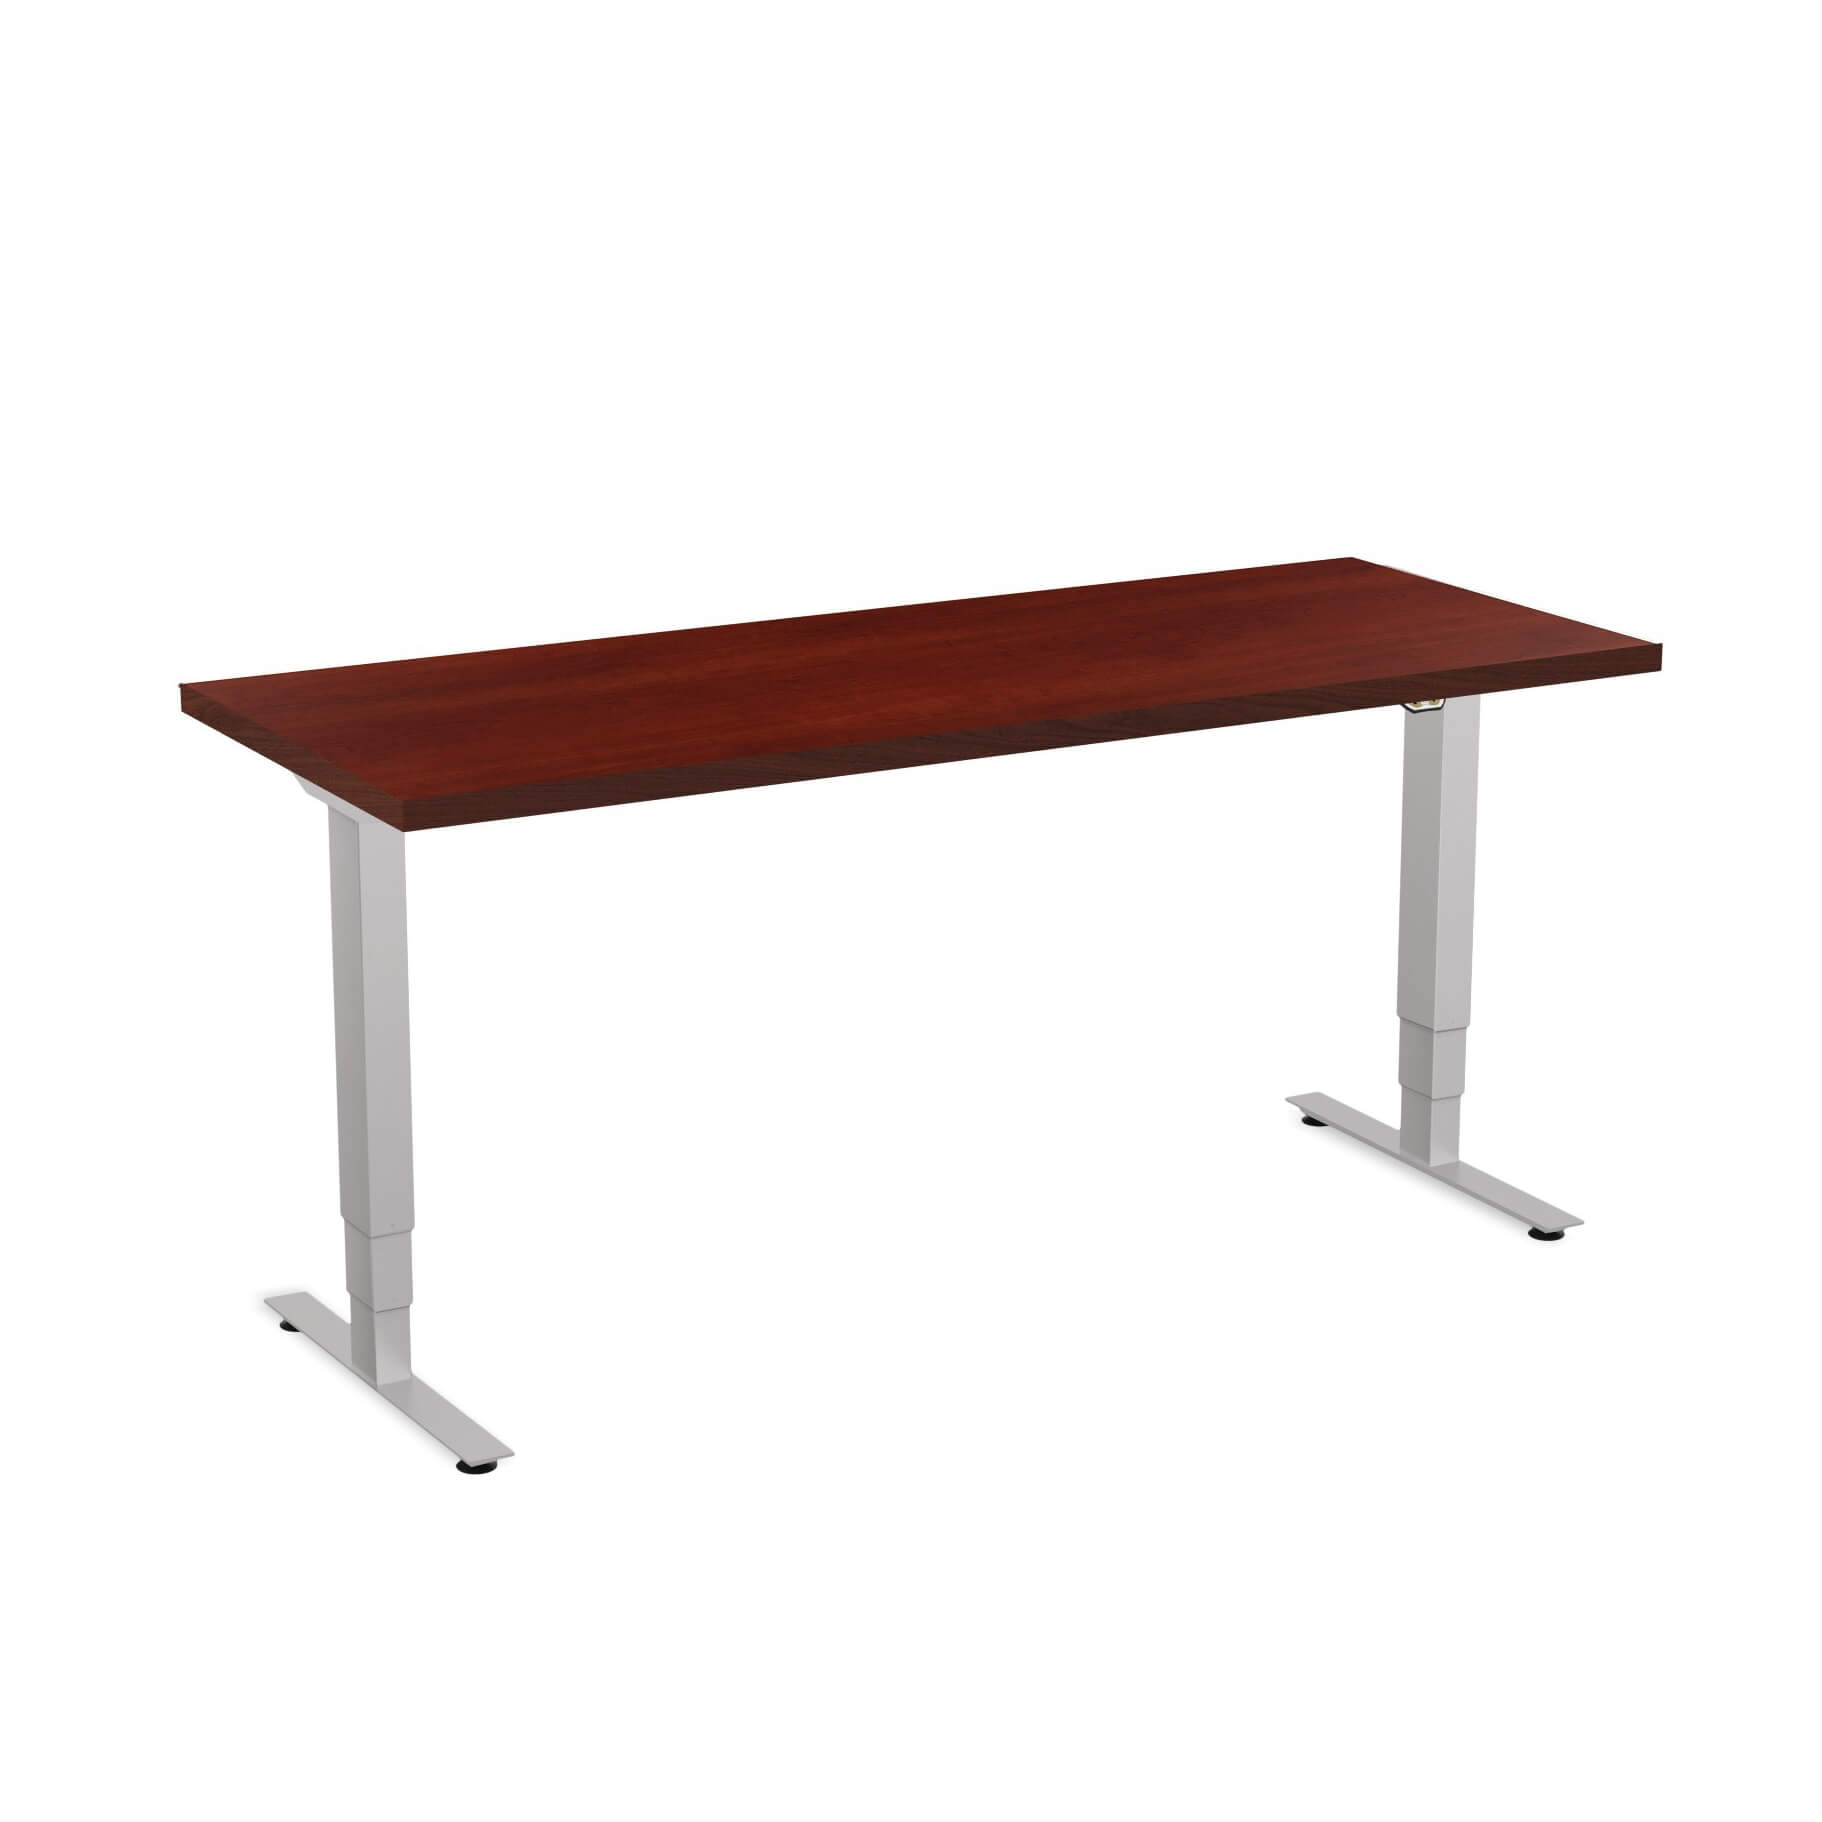 Sit stand desk adjustable CUB 1D PATR 2460 CH EPS